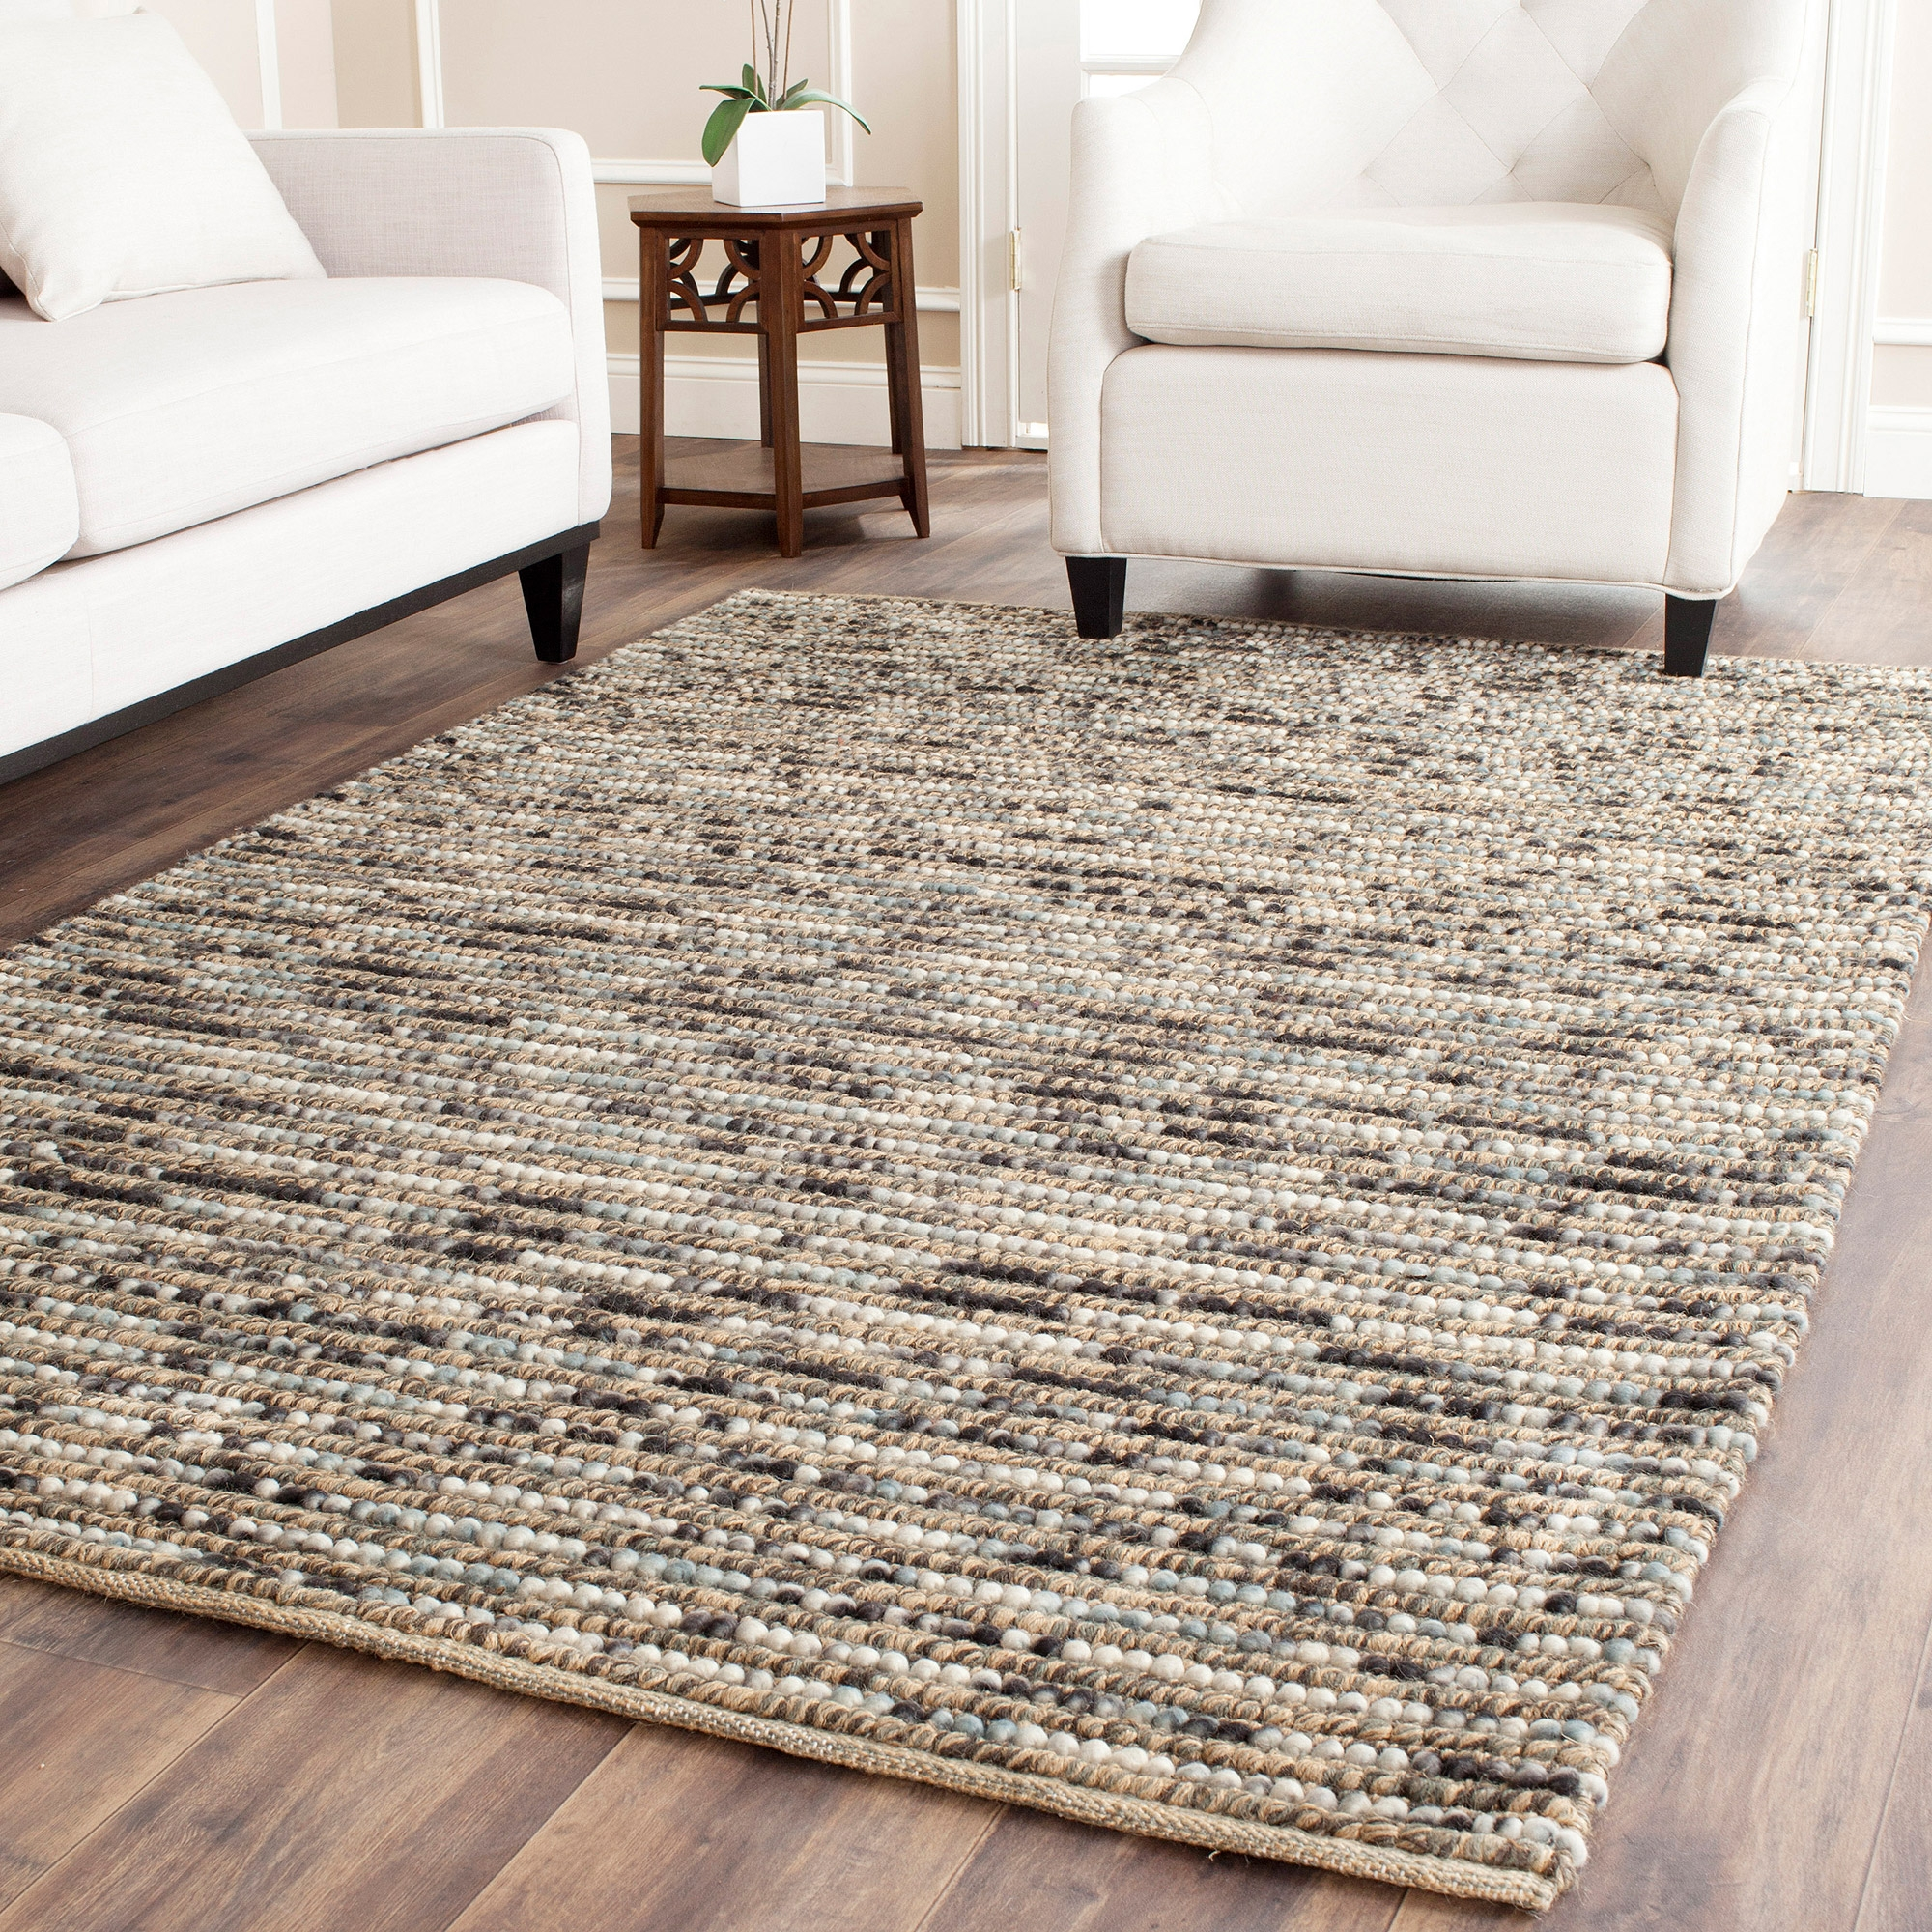 is the your i textiles rugs of home plethora that in bohemian img rug keep or adding decor can most inspired schemeyou layered part layering patterns love rooms color matter taste no